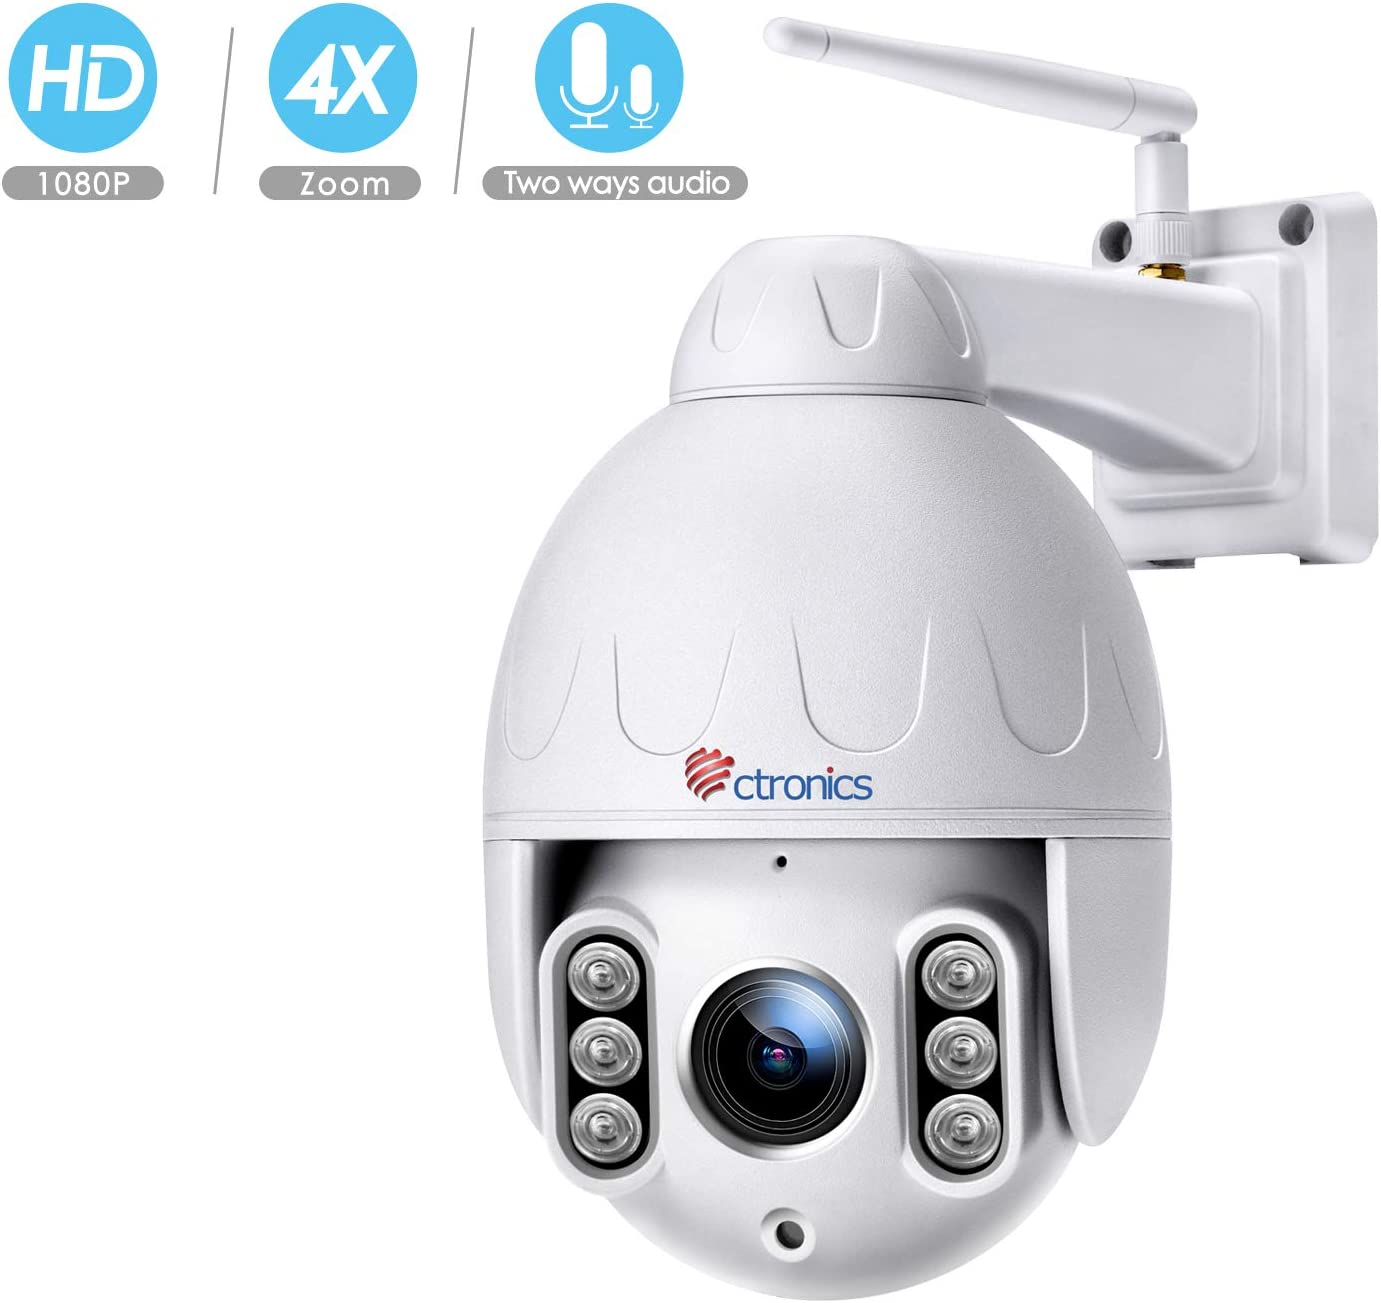 Ctronics PTZ WiFi Camera Outdoor,1080P Security IP Camera,Pan Tilt Zoom 4 X Optical Zoom Dome Camera,Motion Detection,165feet Night vision,Waterproof IP65,Micro SD card Up to 128GB not included